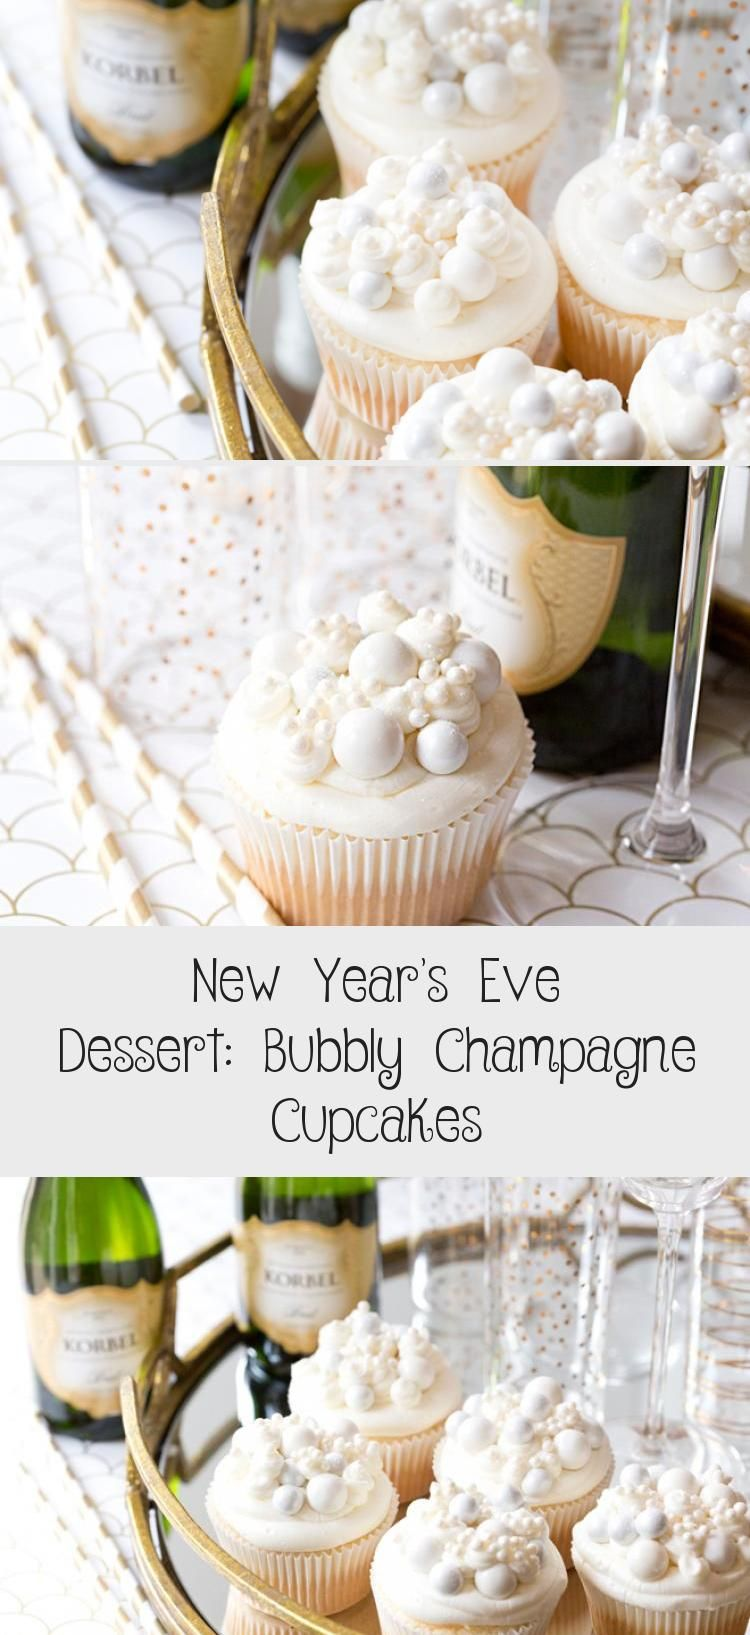 New Year's Eve Dessert Bubbly Champagne Cupcakes